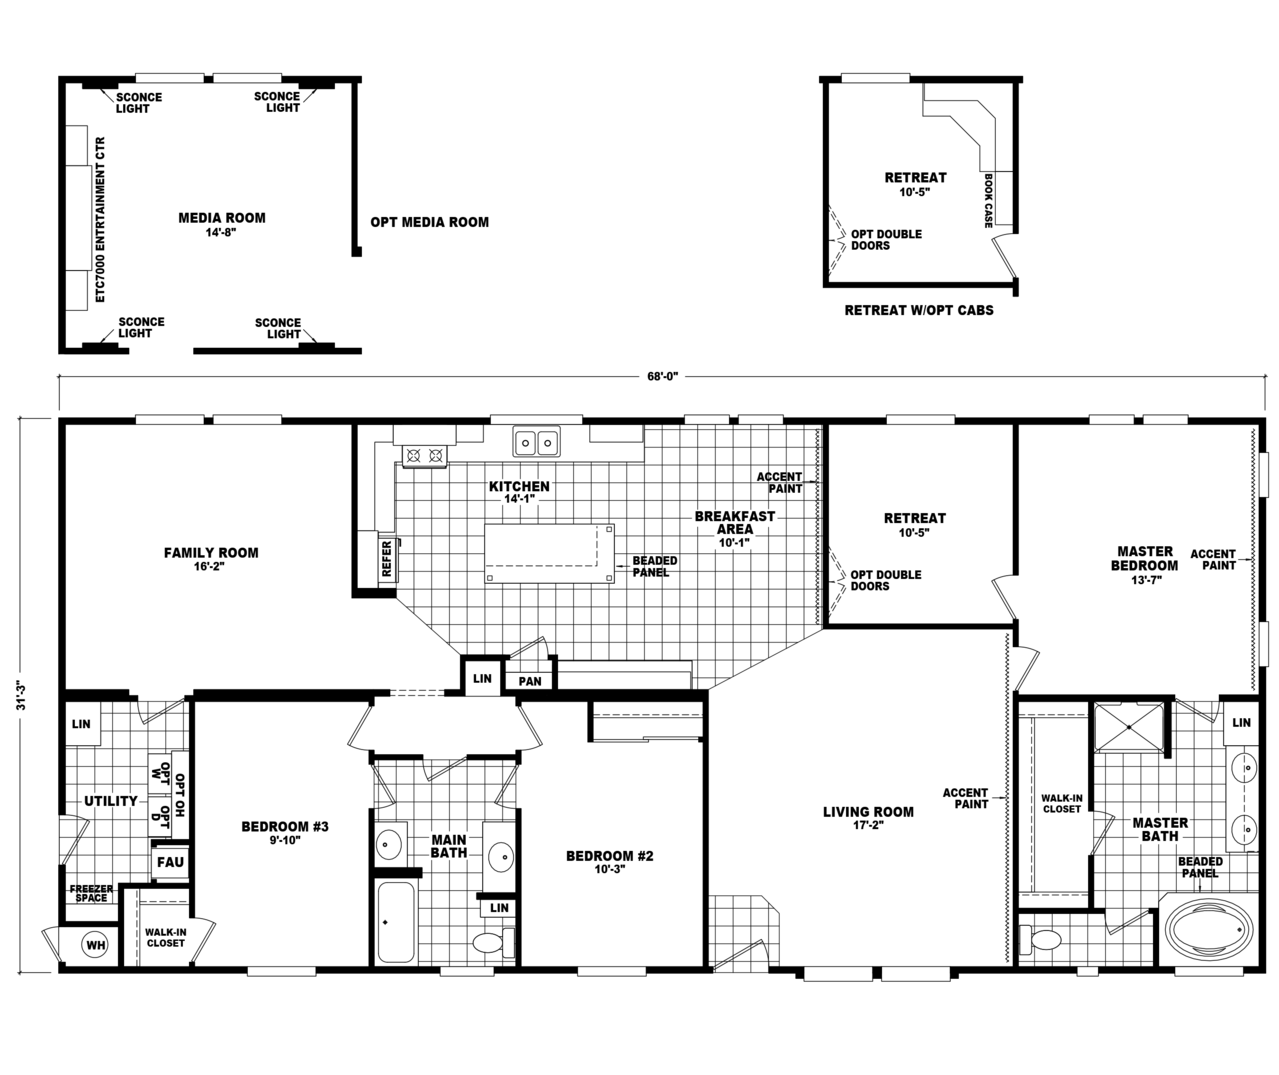 The Retreat Floor Plans Gurus Floor